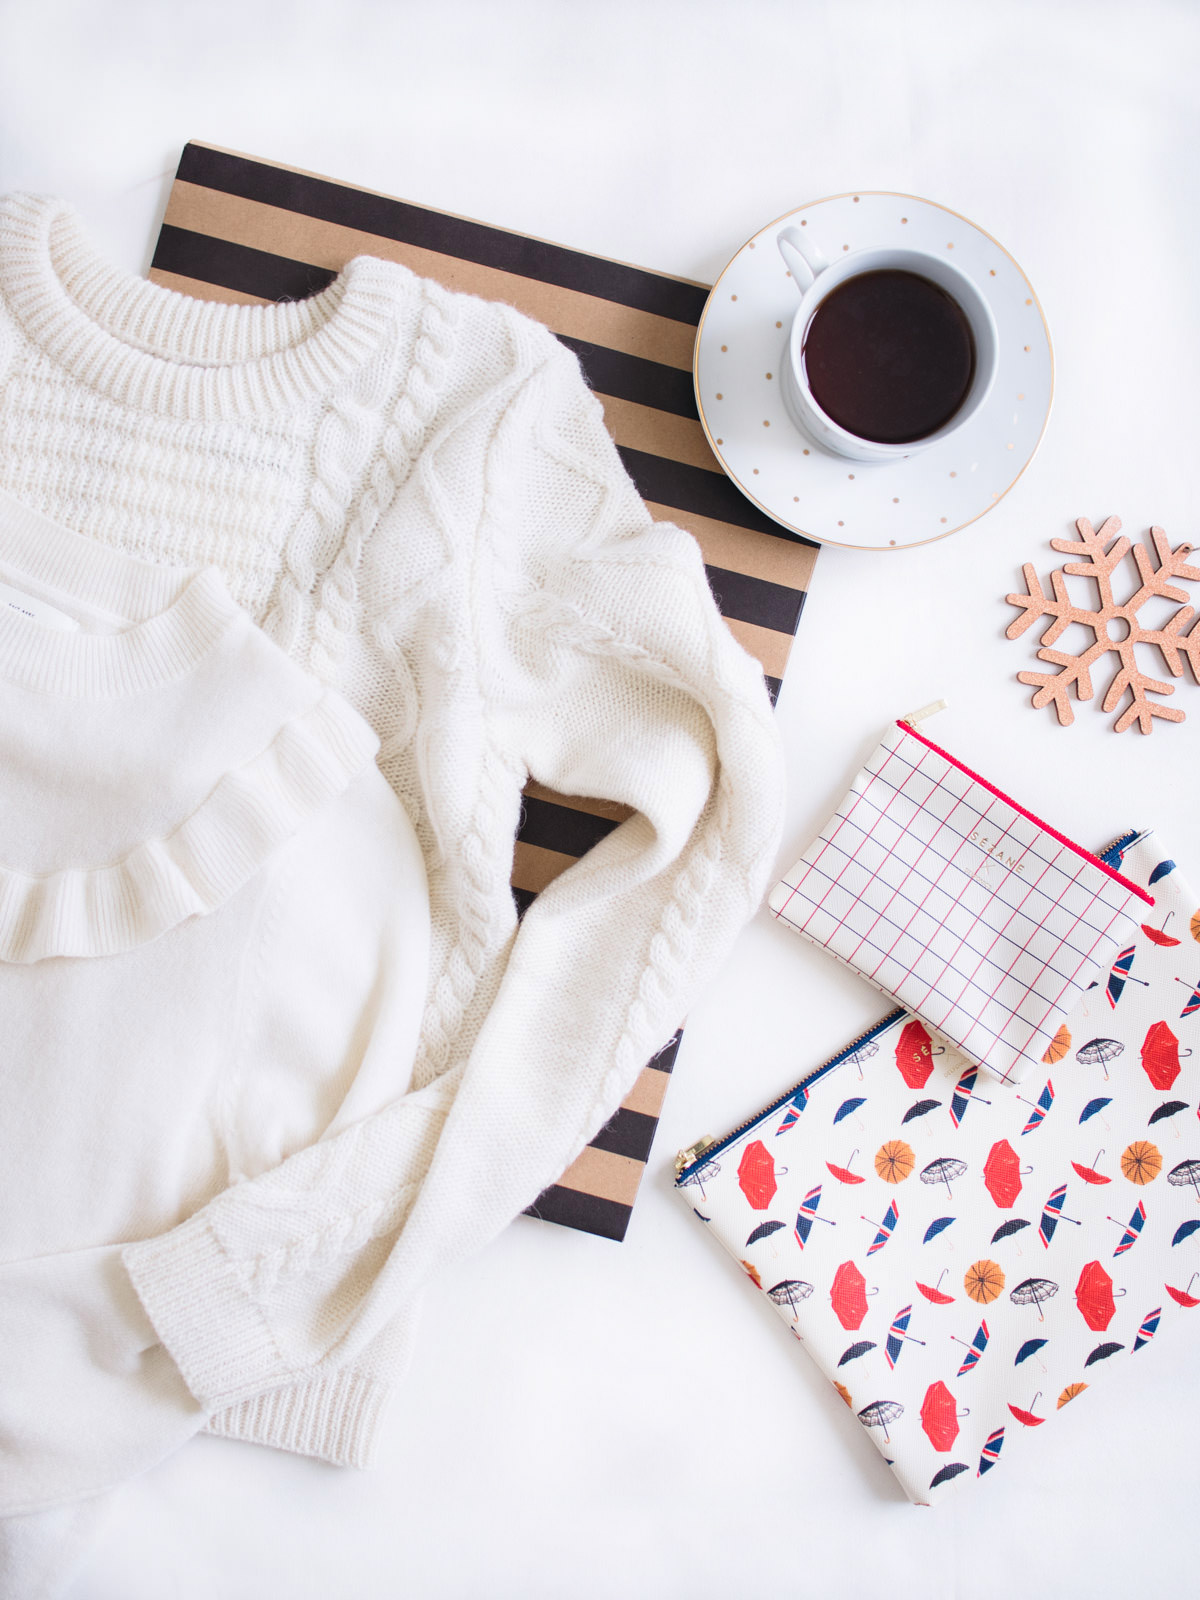 Blog-Mode-And-The-City-Lifestyle-5-petites-choses-196-sezane-connor